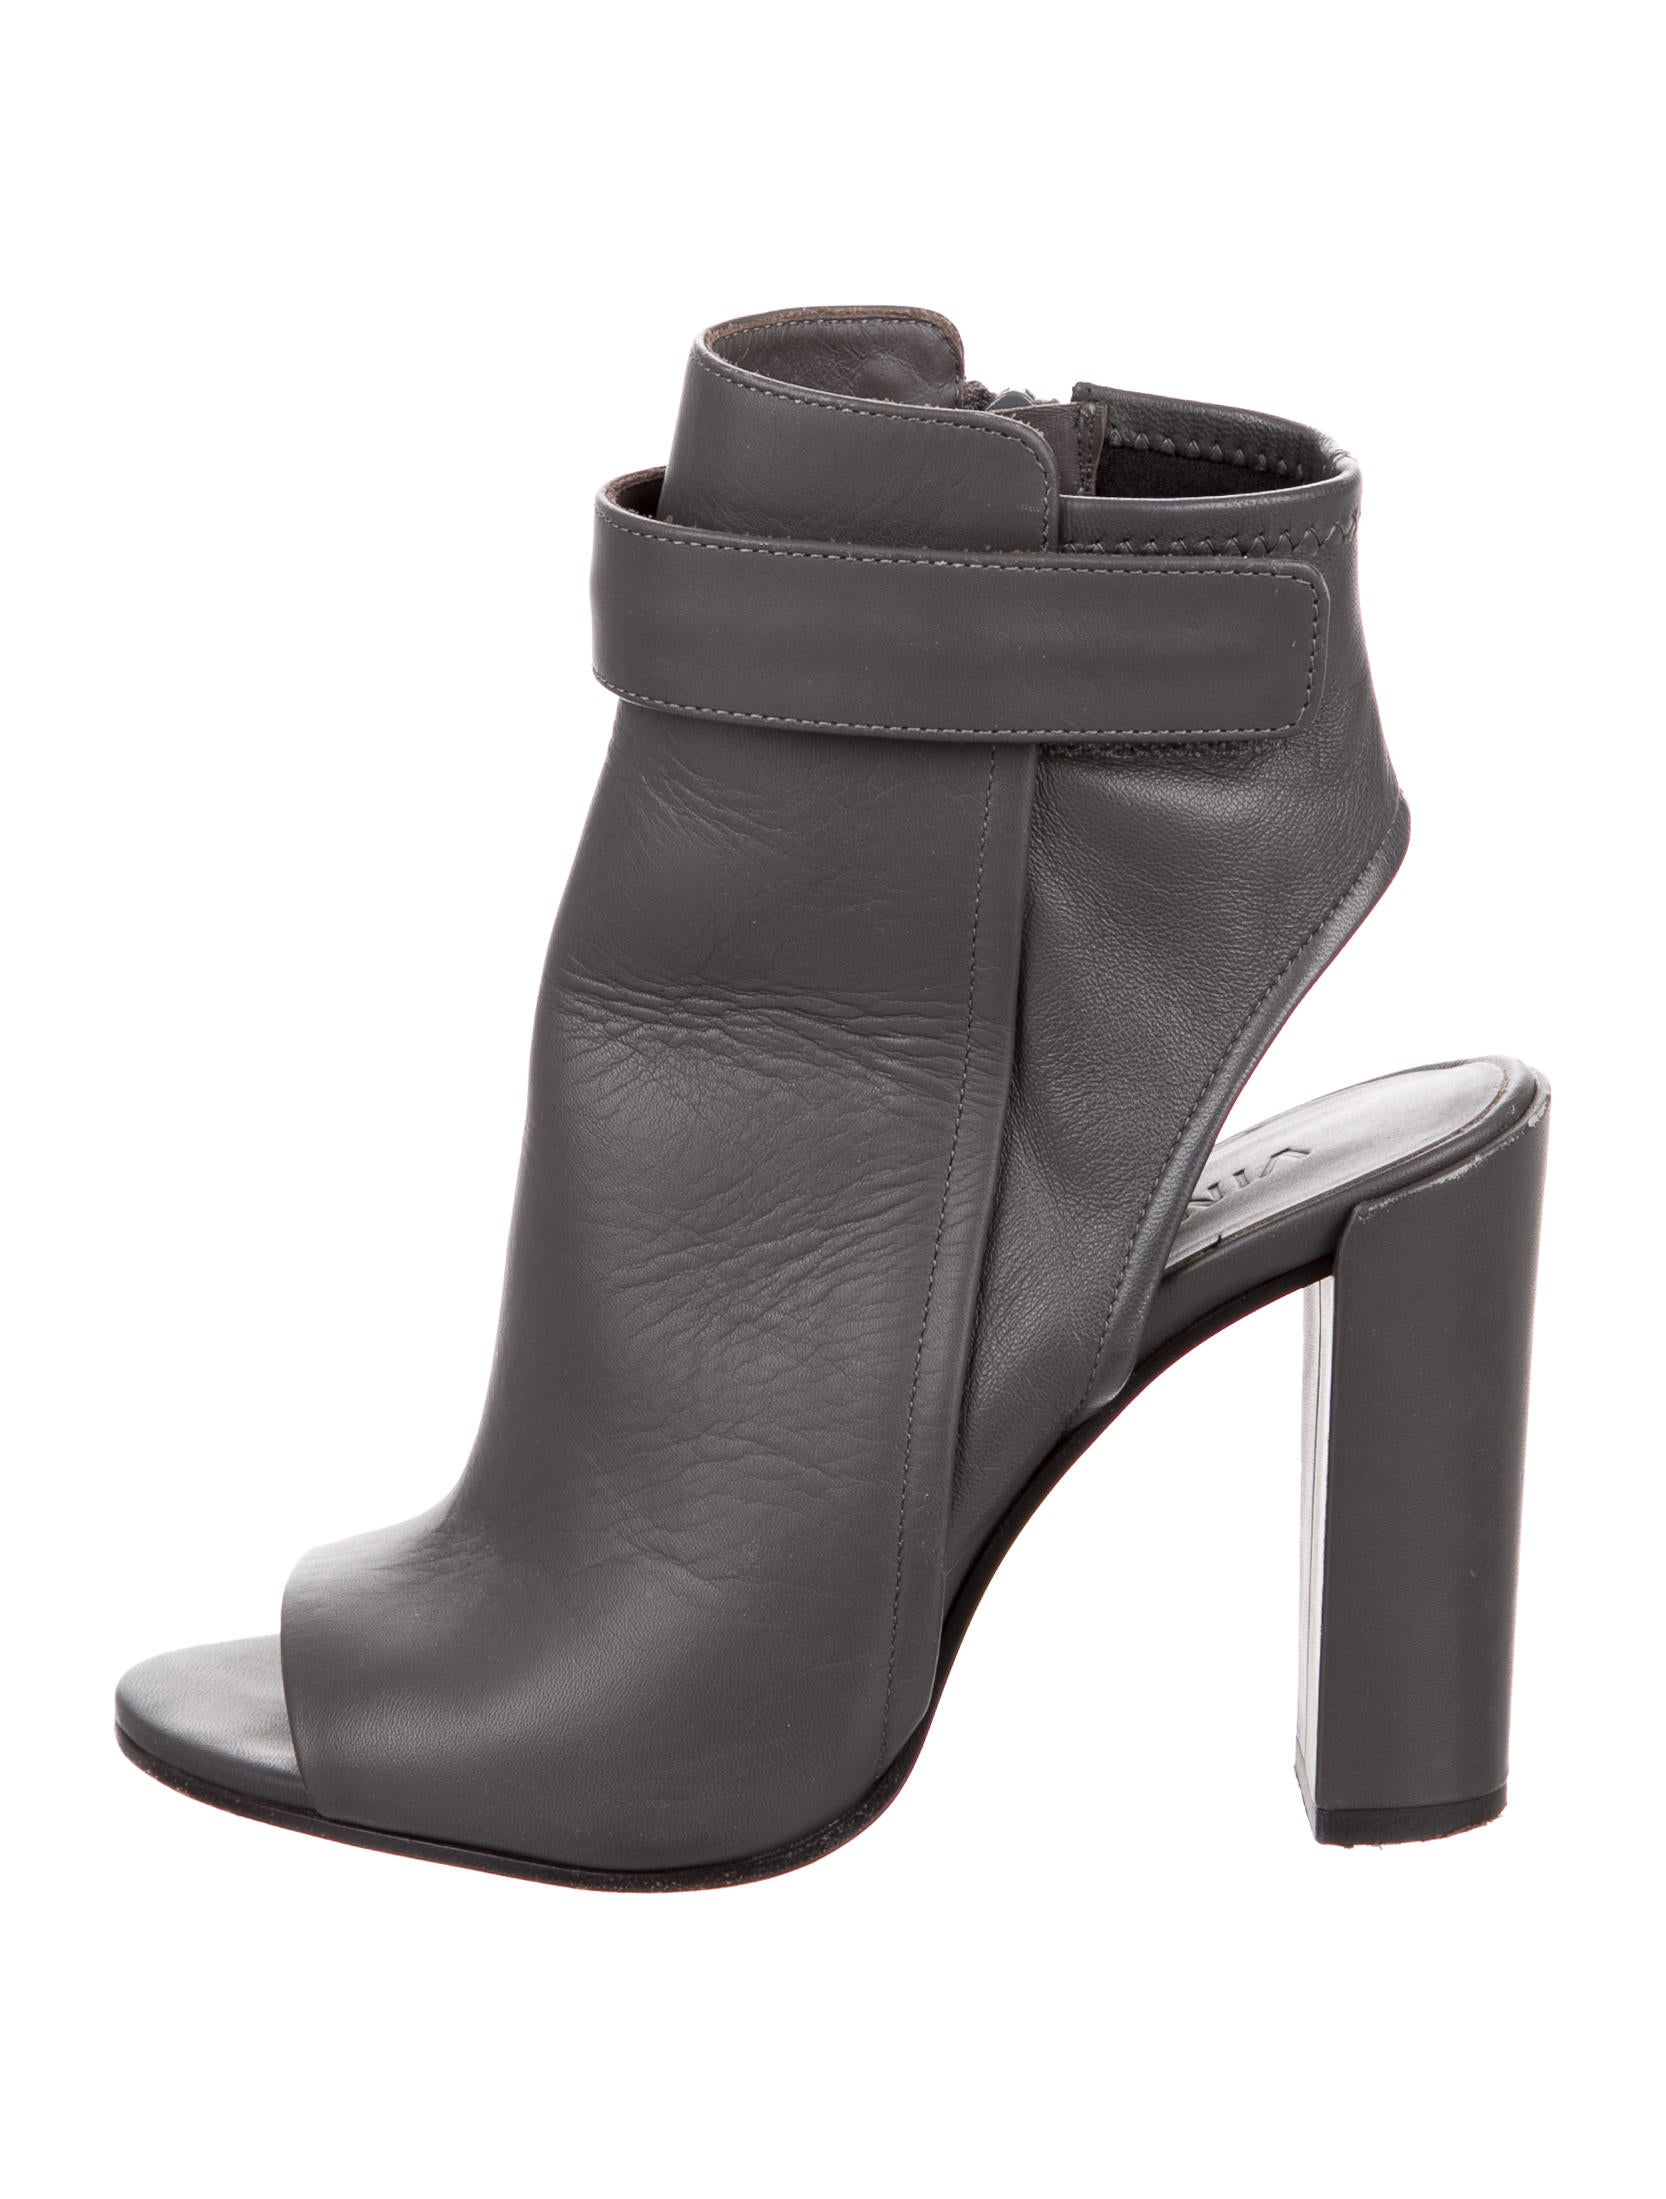 Boss babes everywhere are loving the Chinese Laundry Focus Black Leather Cutout Ankle Booties! Sleek genuine leather shapes these ultra-chic ankle booties with a pointed toe upper and edgy cutouts along the low collar.